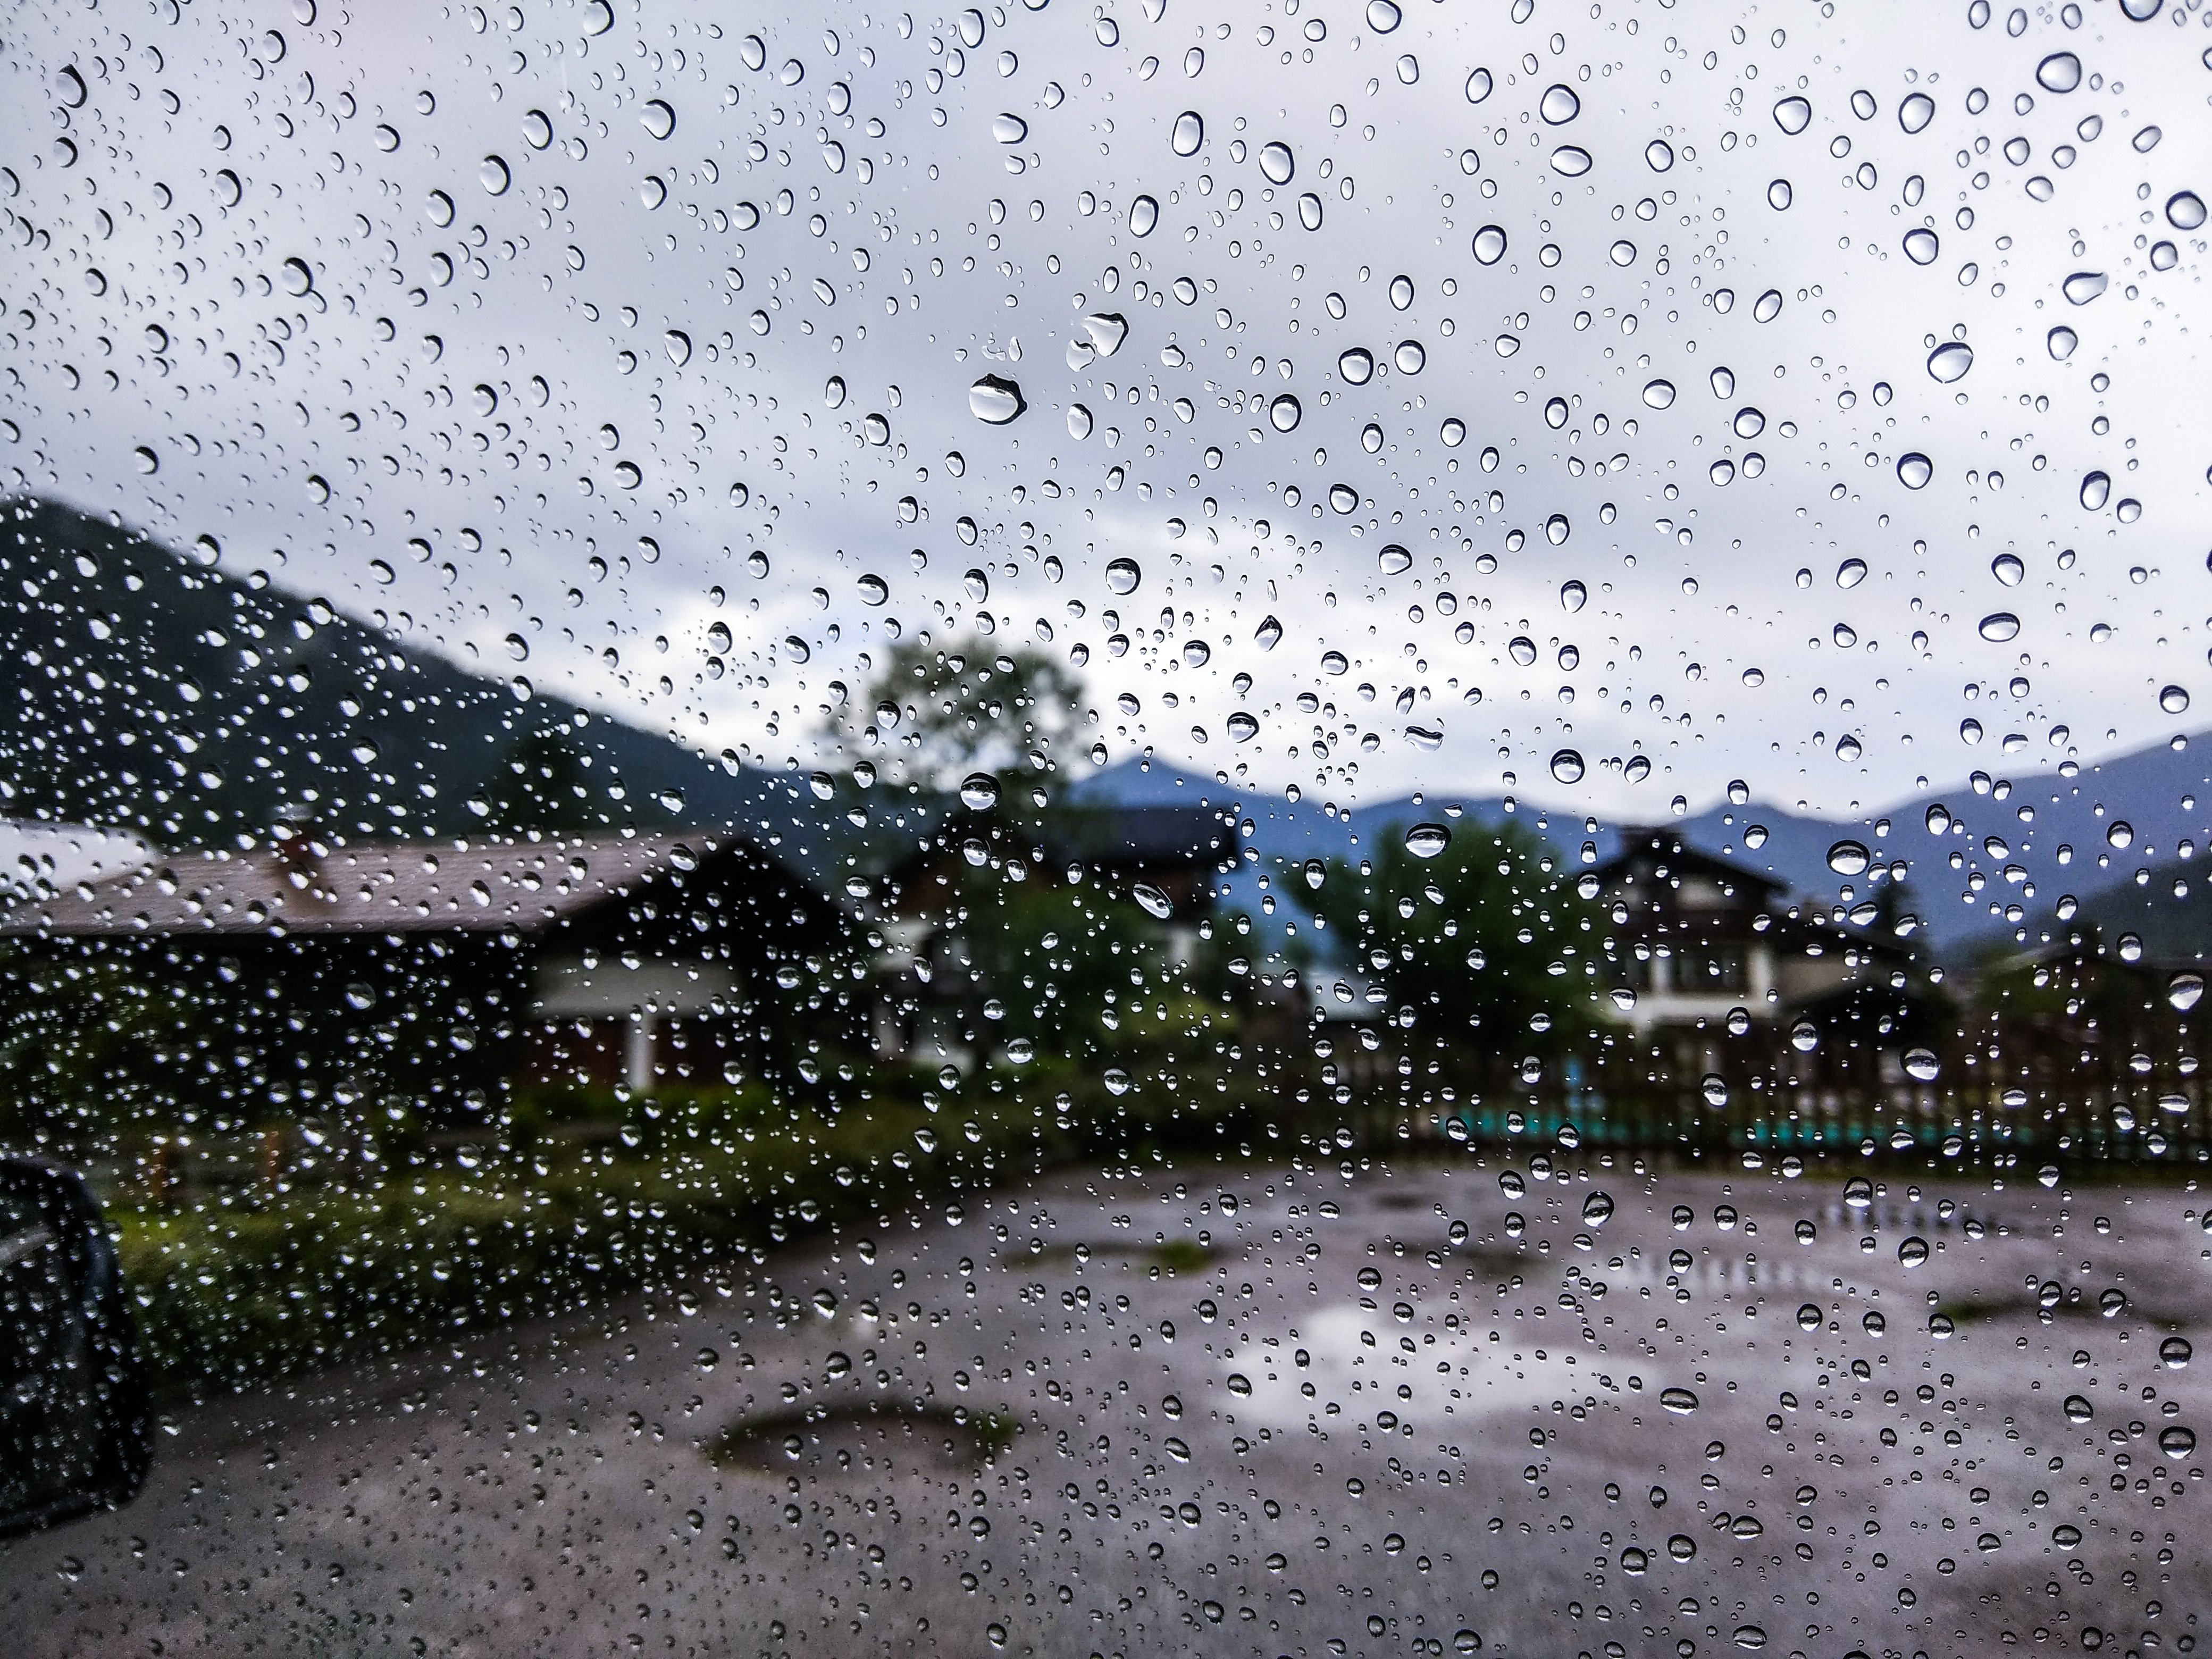 Rain drops at the front glass of our rented car in Austria was also a great photography subject : TravelAnubhav (Travel Anubhav)